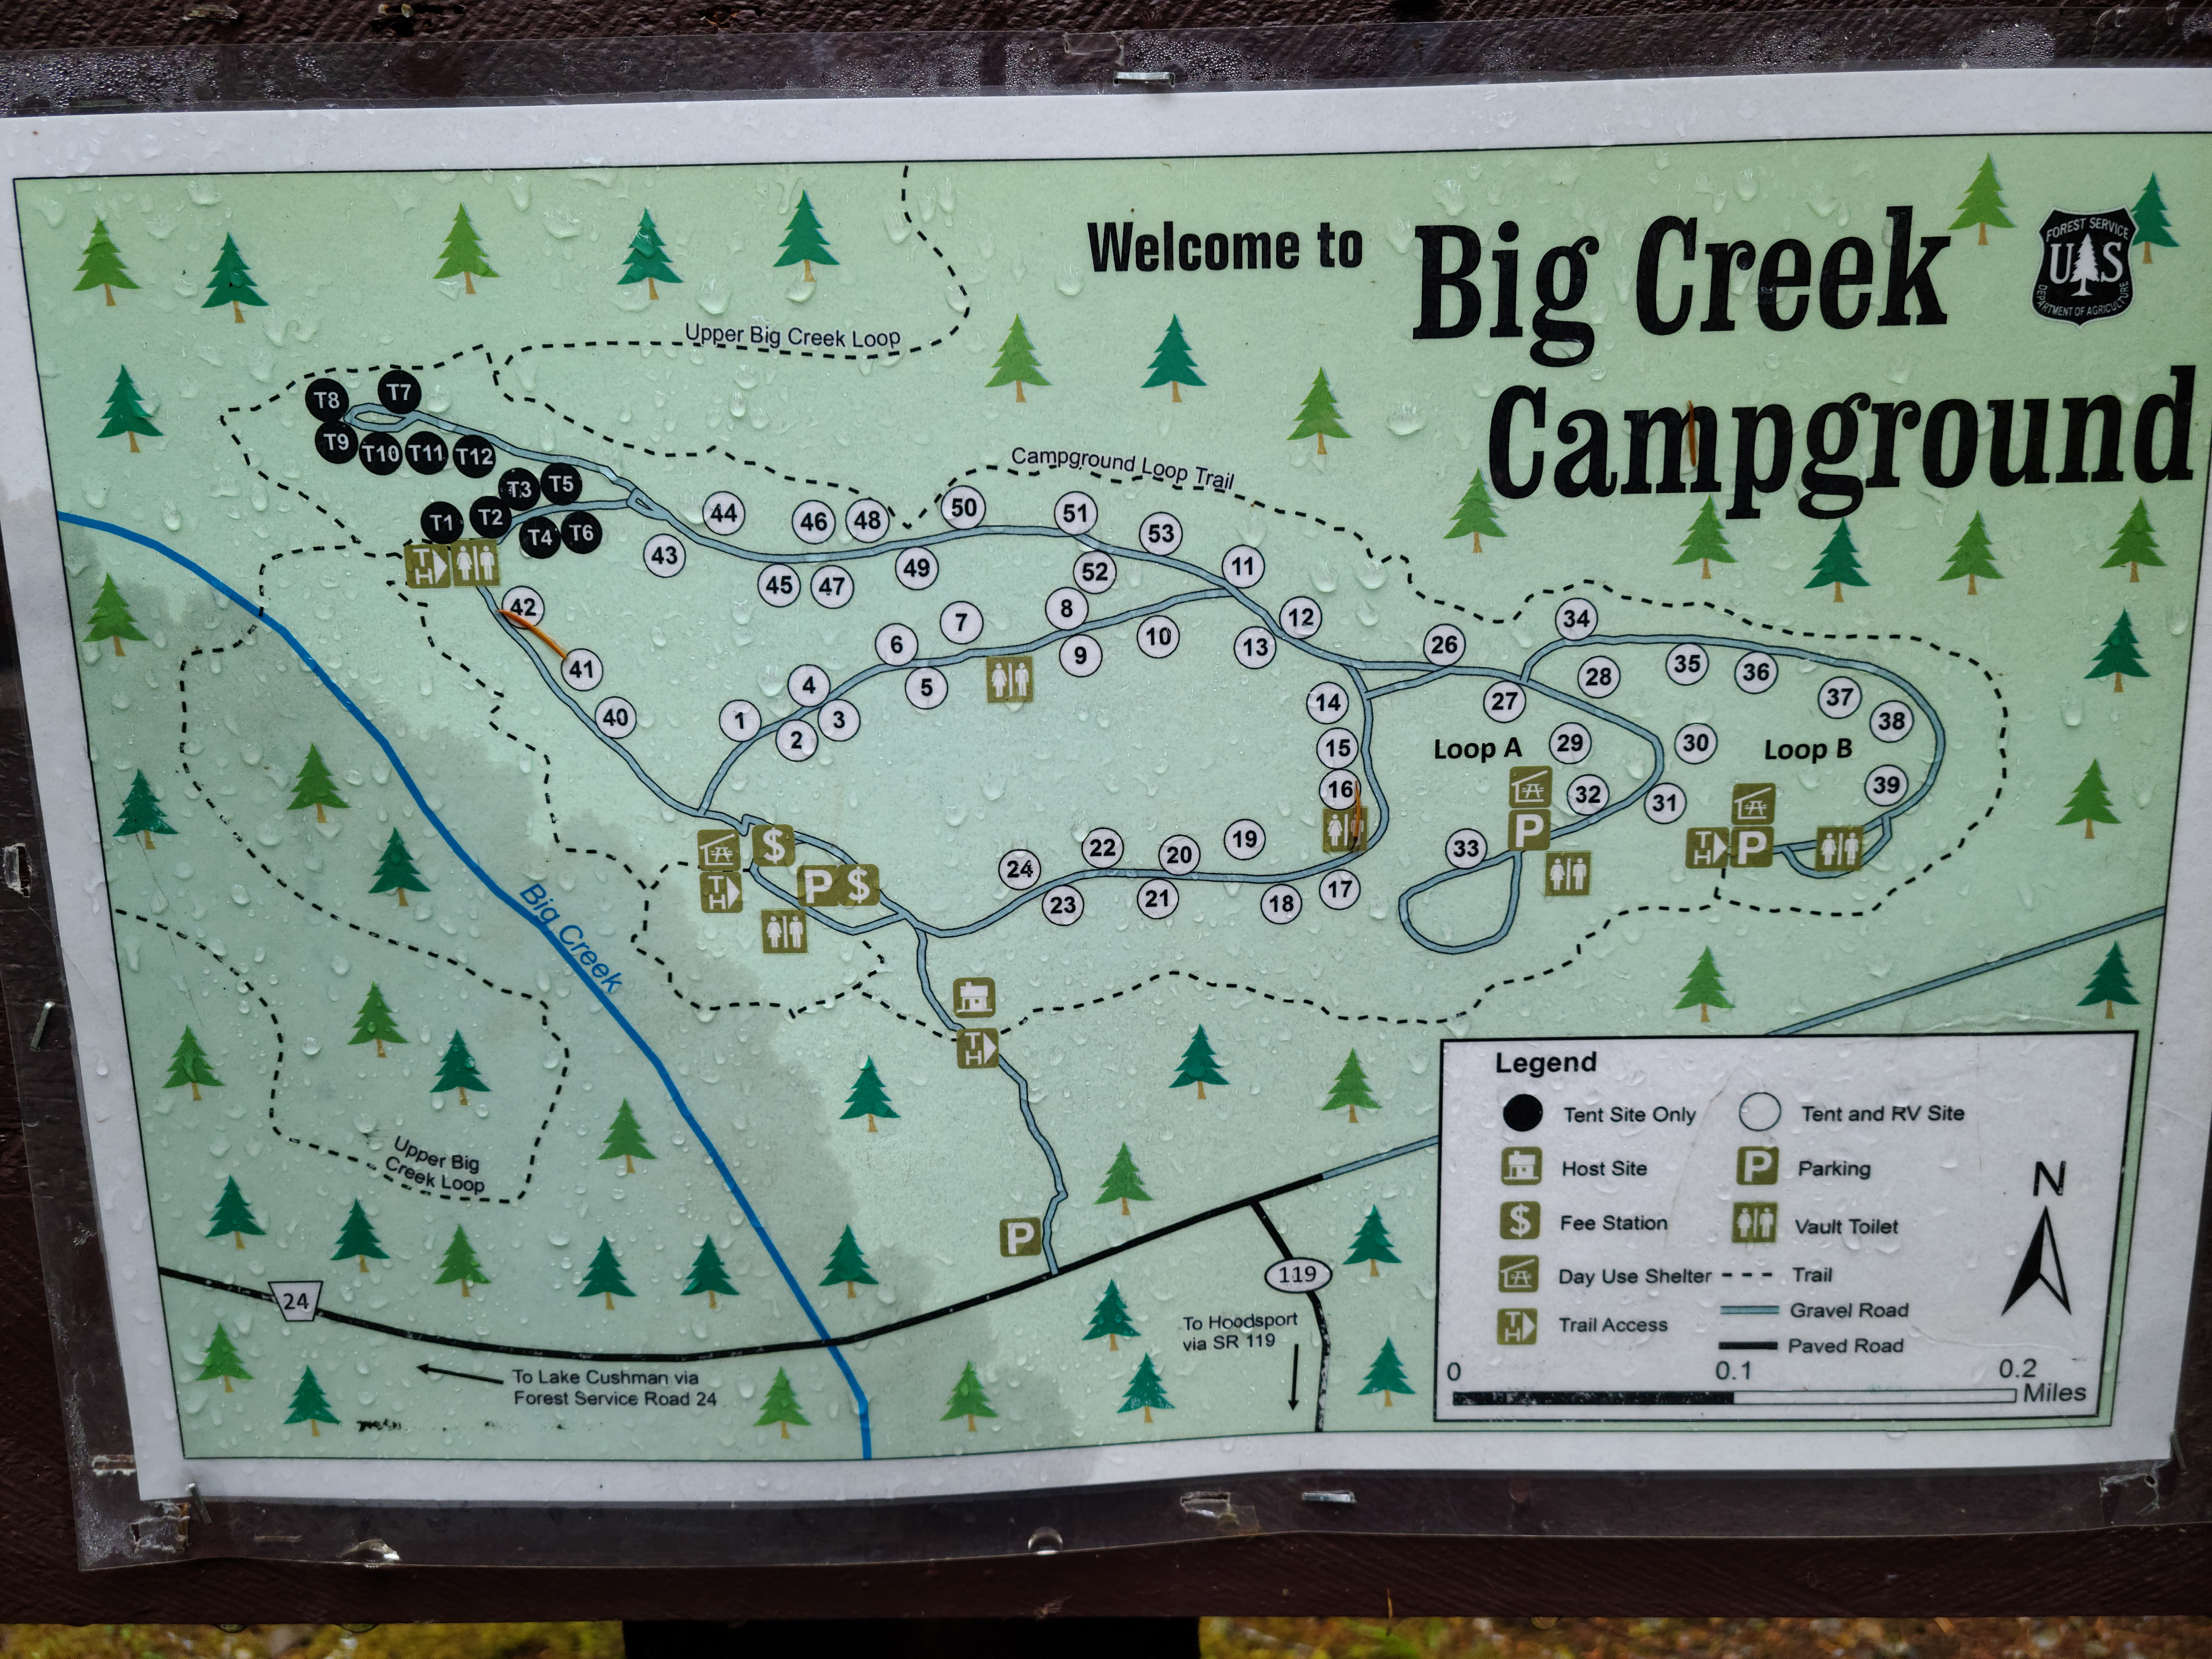 Map of the Big Creek Campground